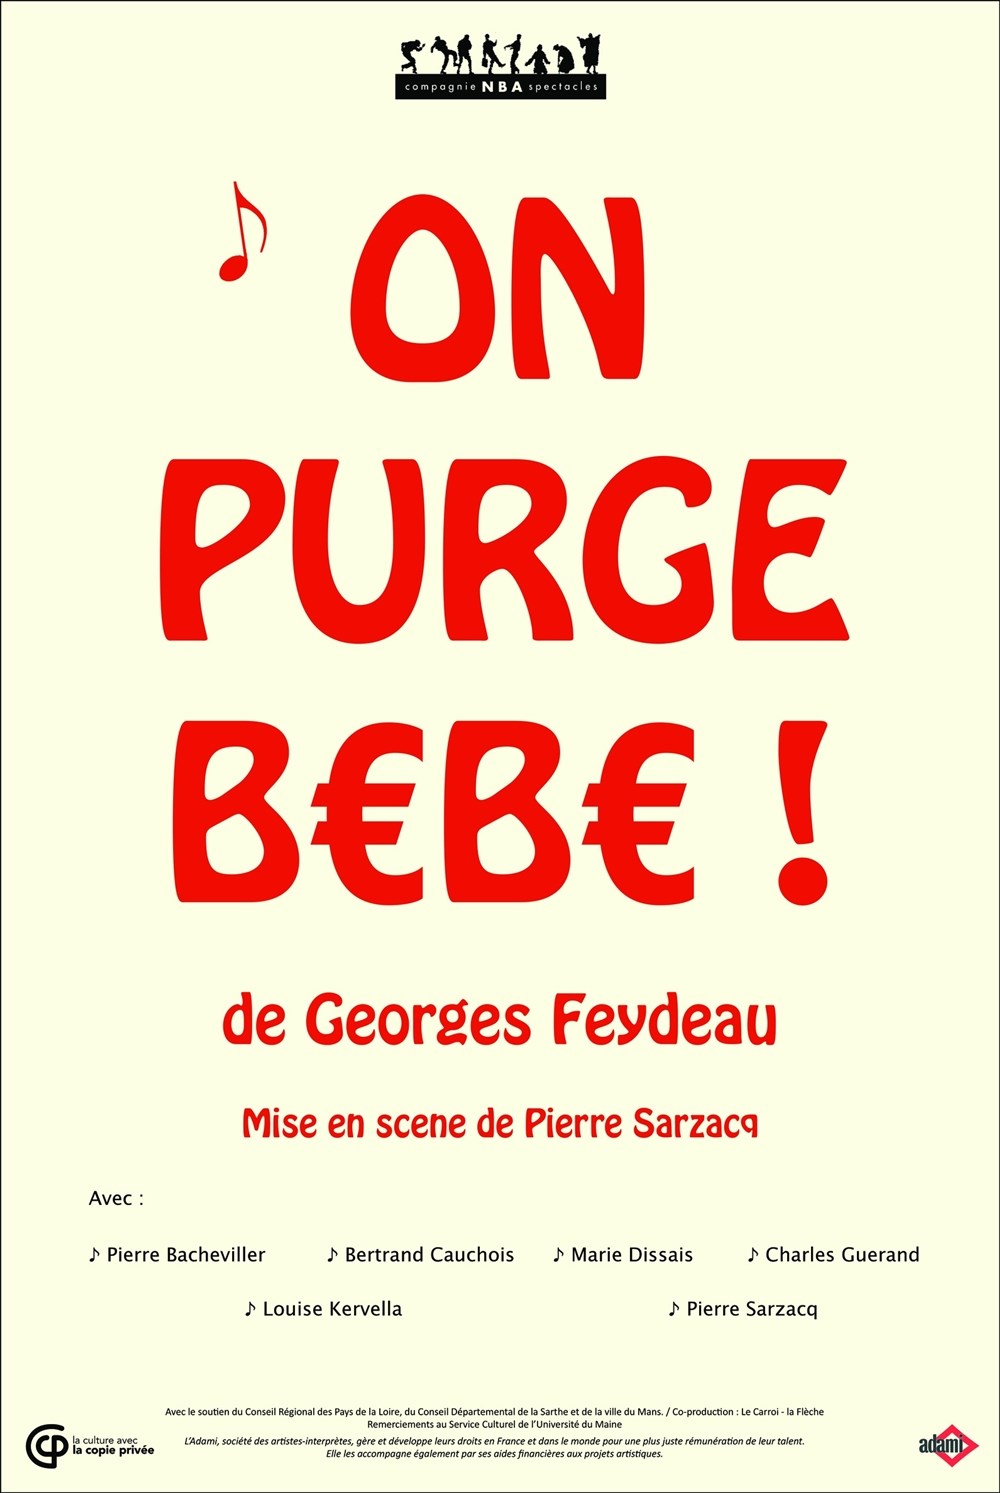 On purge bébé ! de G Feydeau par la Cie NBA Spectacles